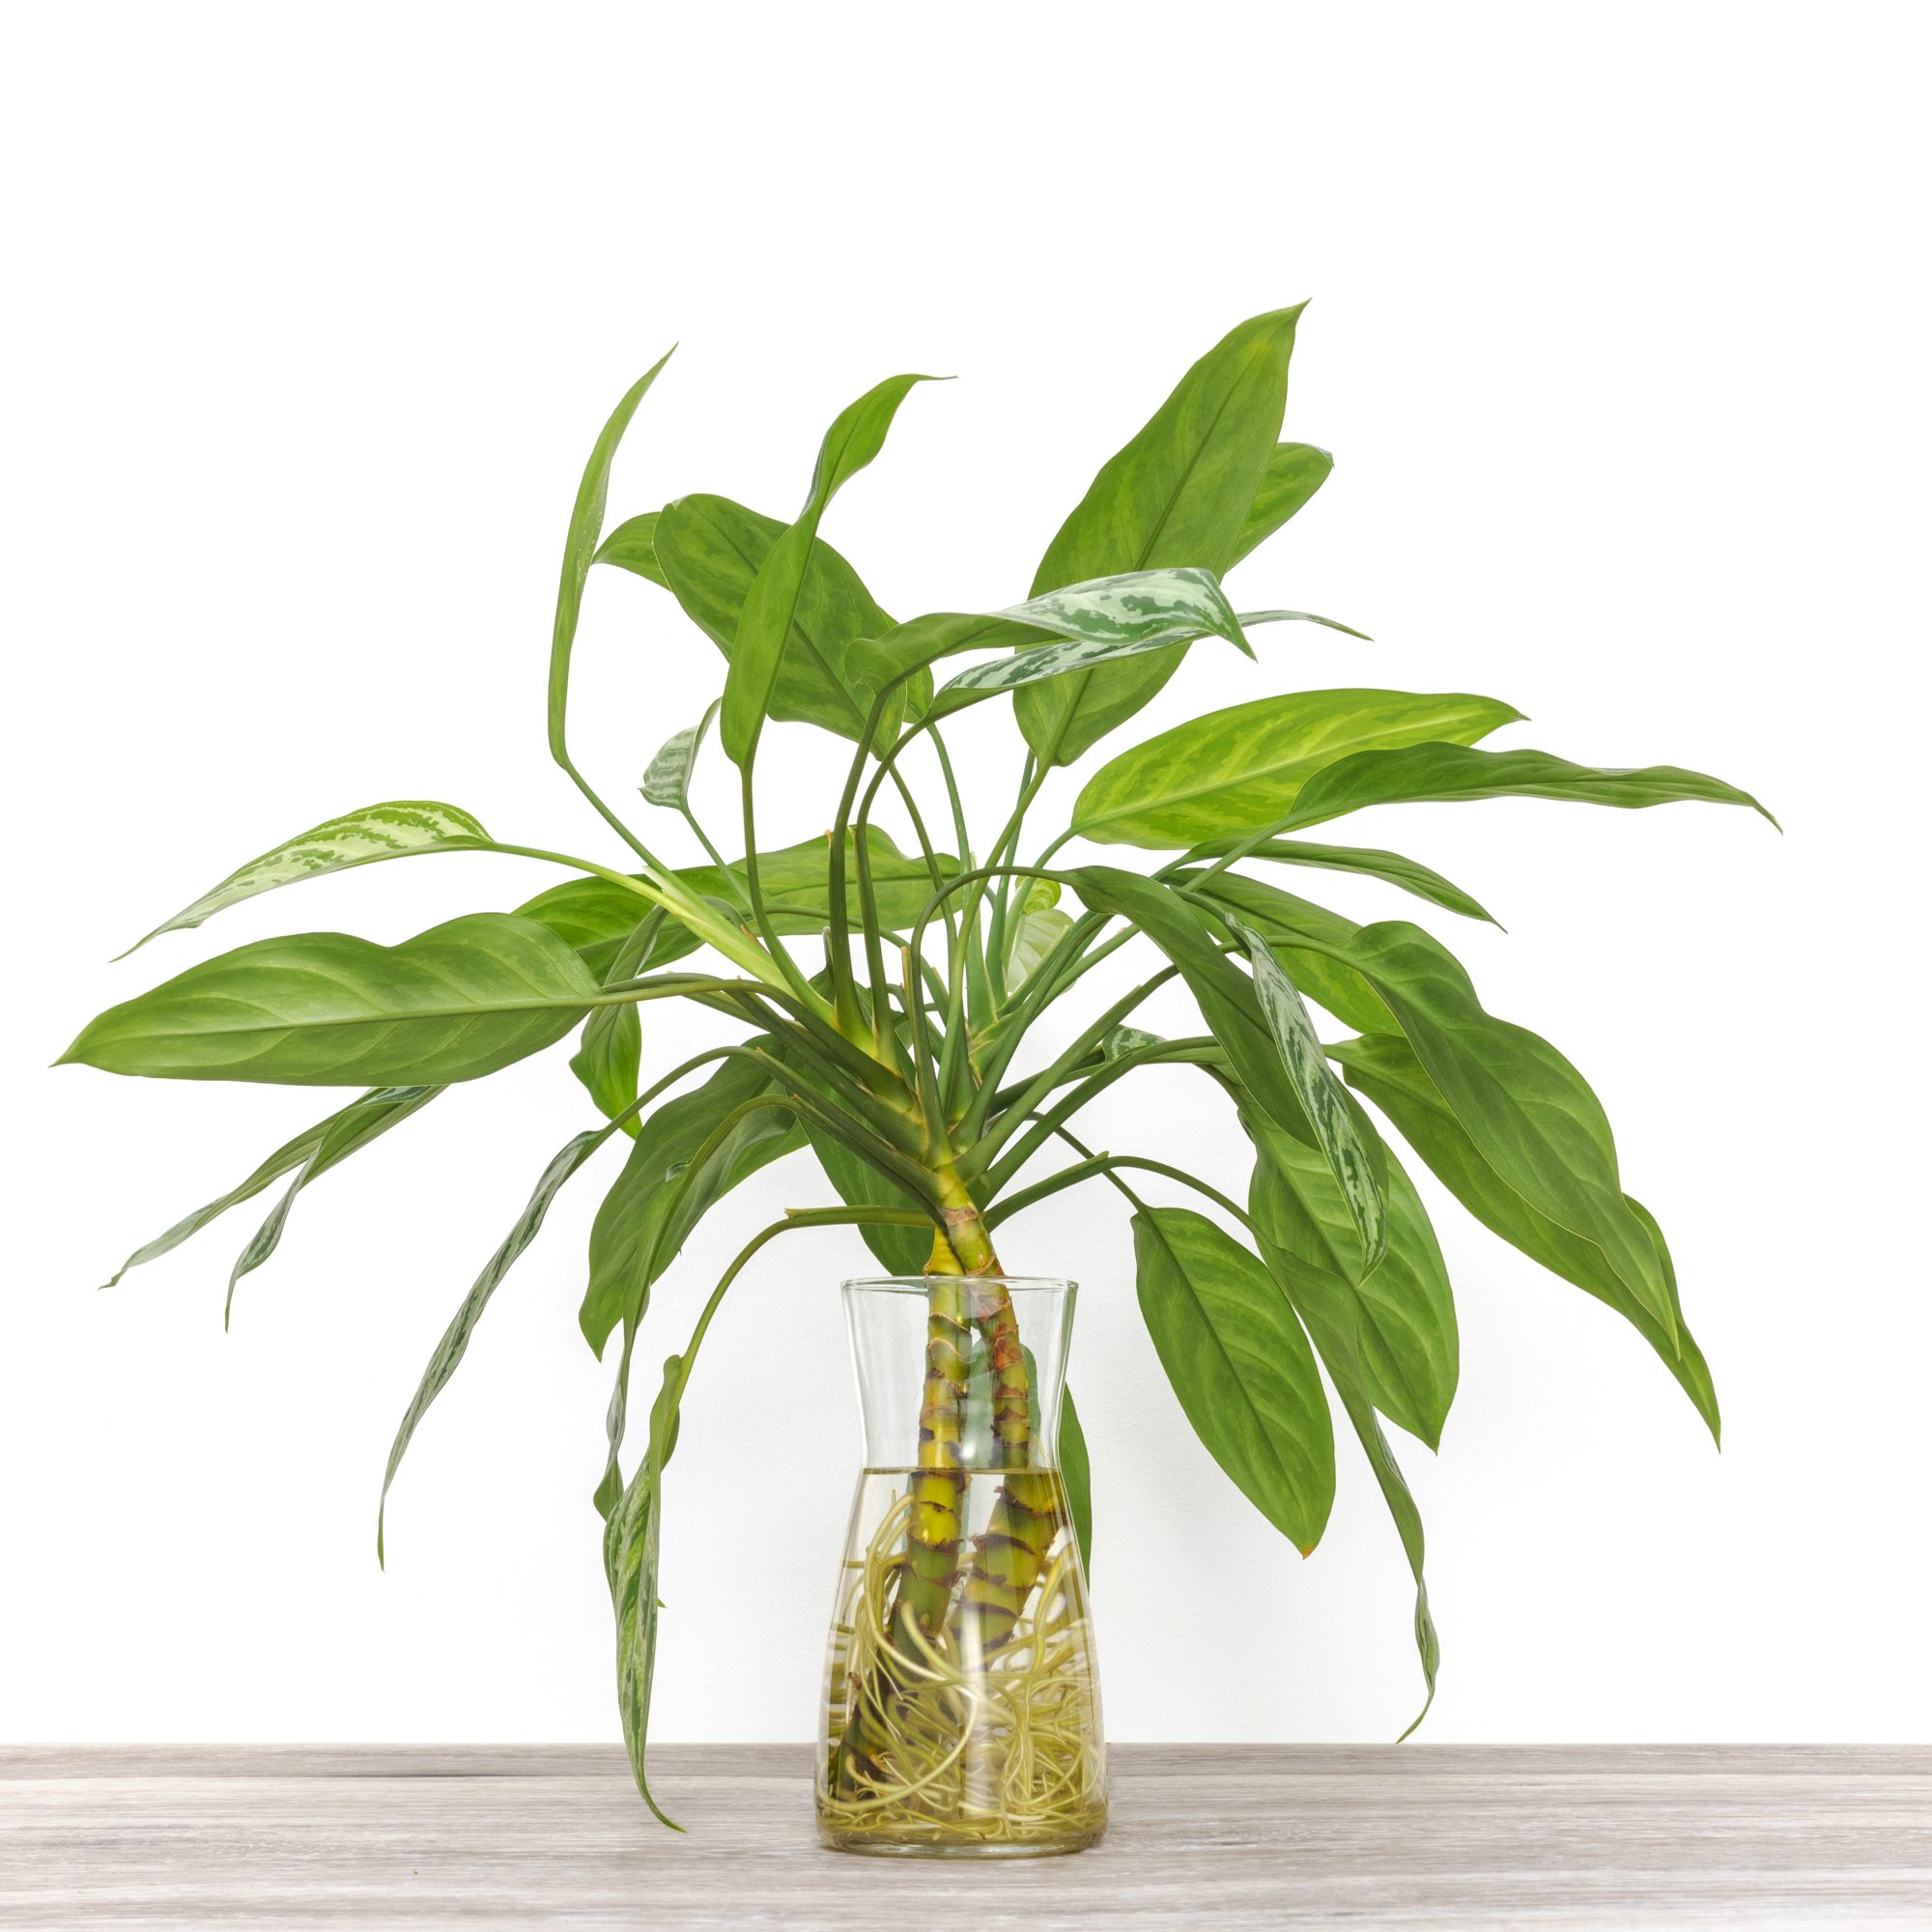 Chinese evergreen plant in glass vase